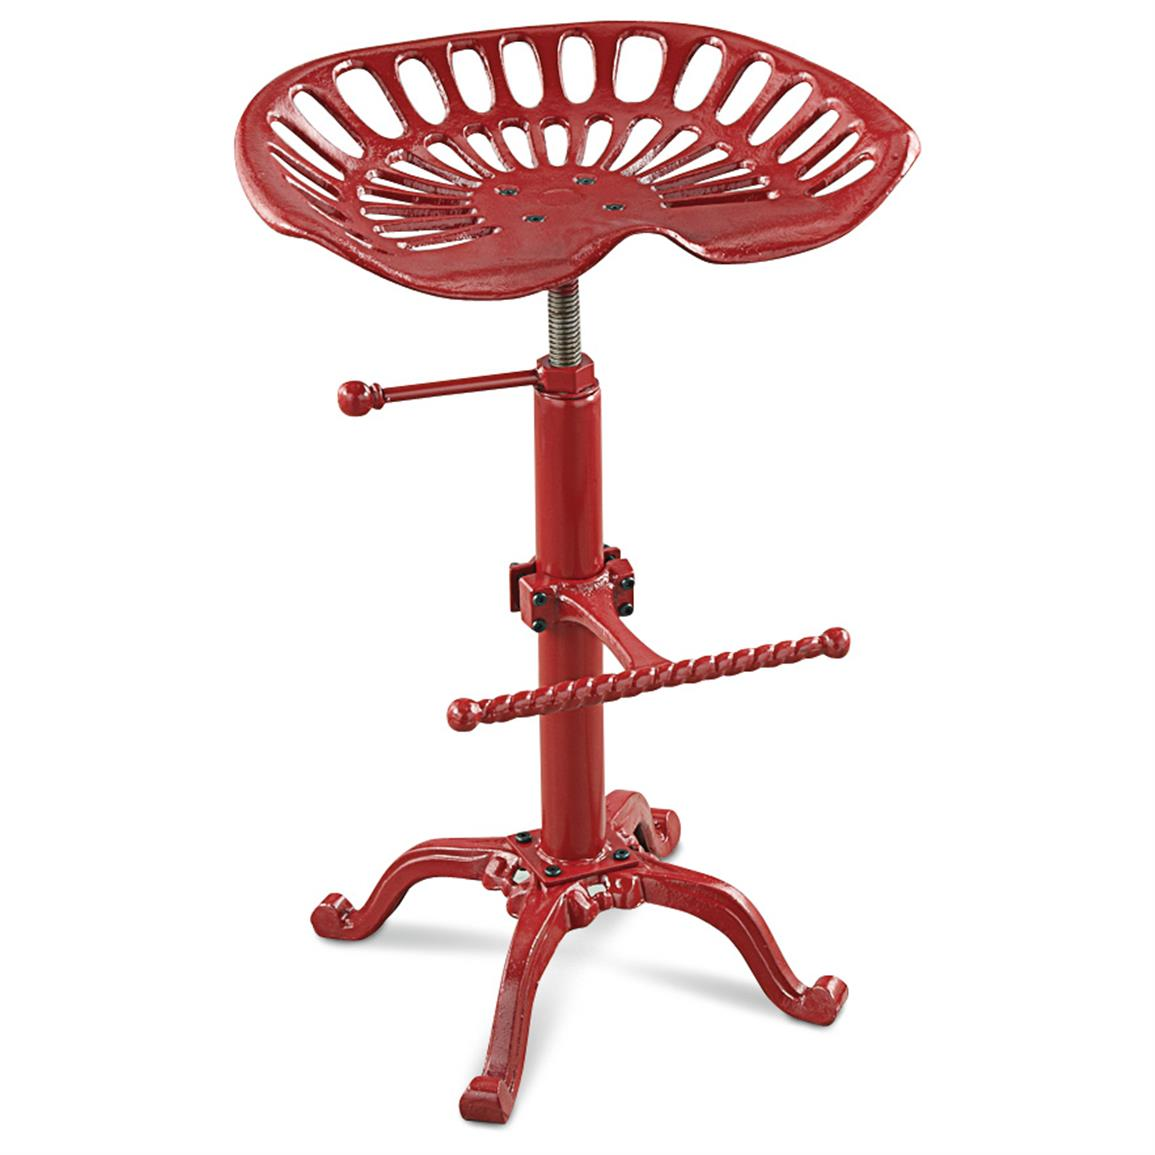 Farmhouse Adjustable Tractor Seat Bar Stool, Red